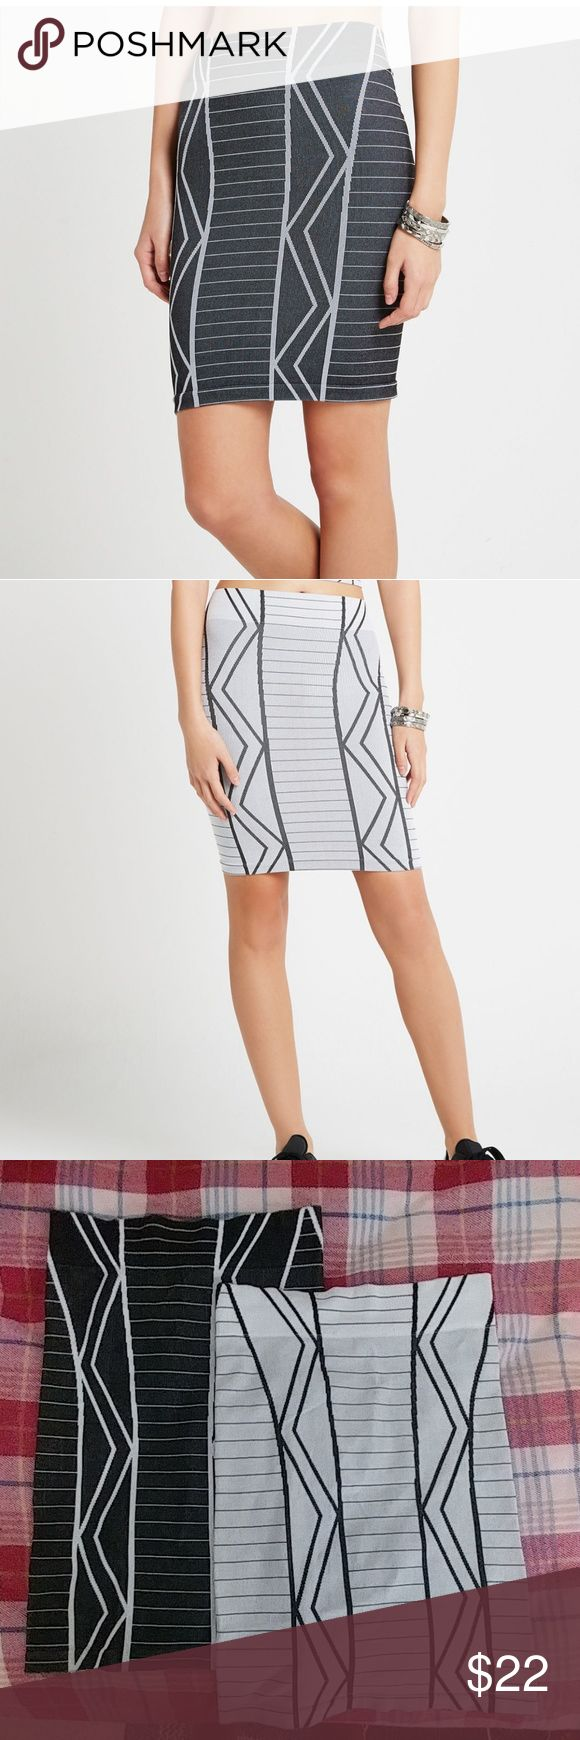 Set of two bcbg geo tribal pattern skirts Sits at the waist. Elasticized waistband. Seamless construction. Pencil skirt silhouette. Hits above the knee. Allover tribal print They are very comfortable, only worn a few times. Both are the same size BCBGeneration Skirts Pencil